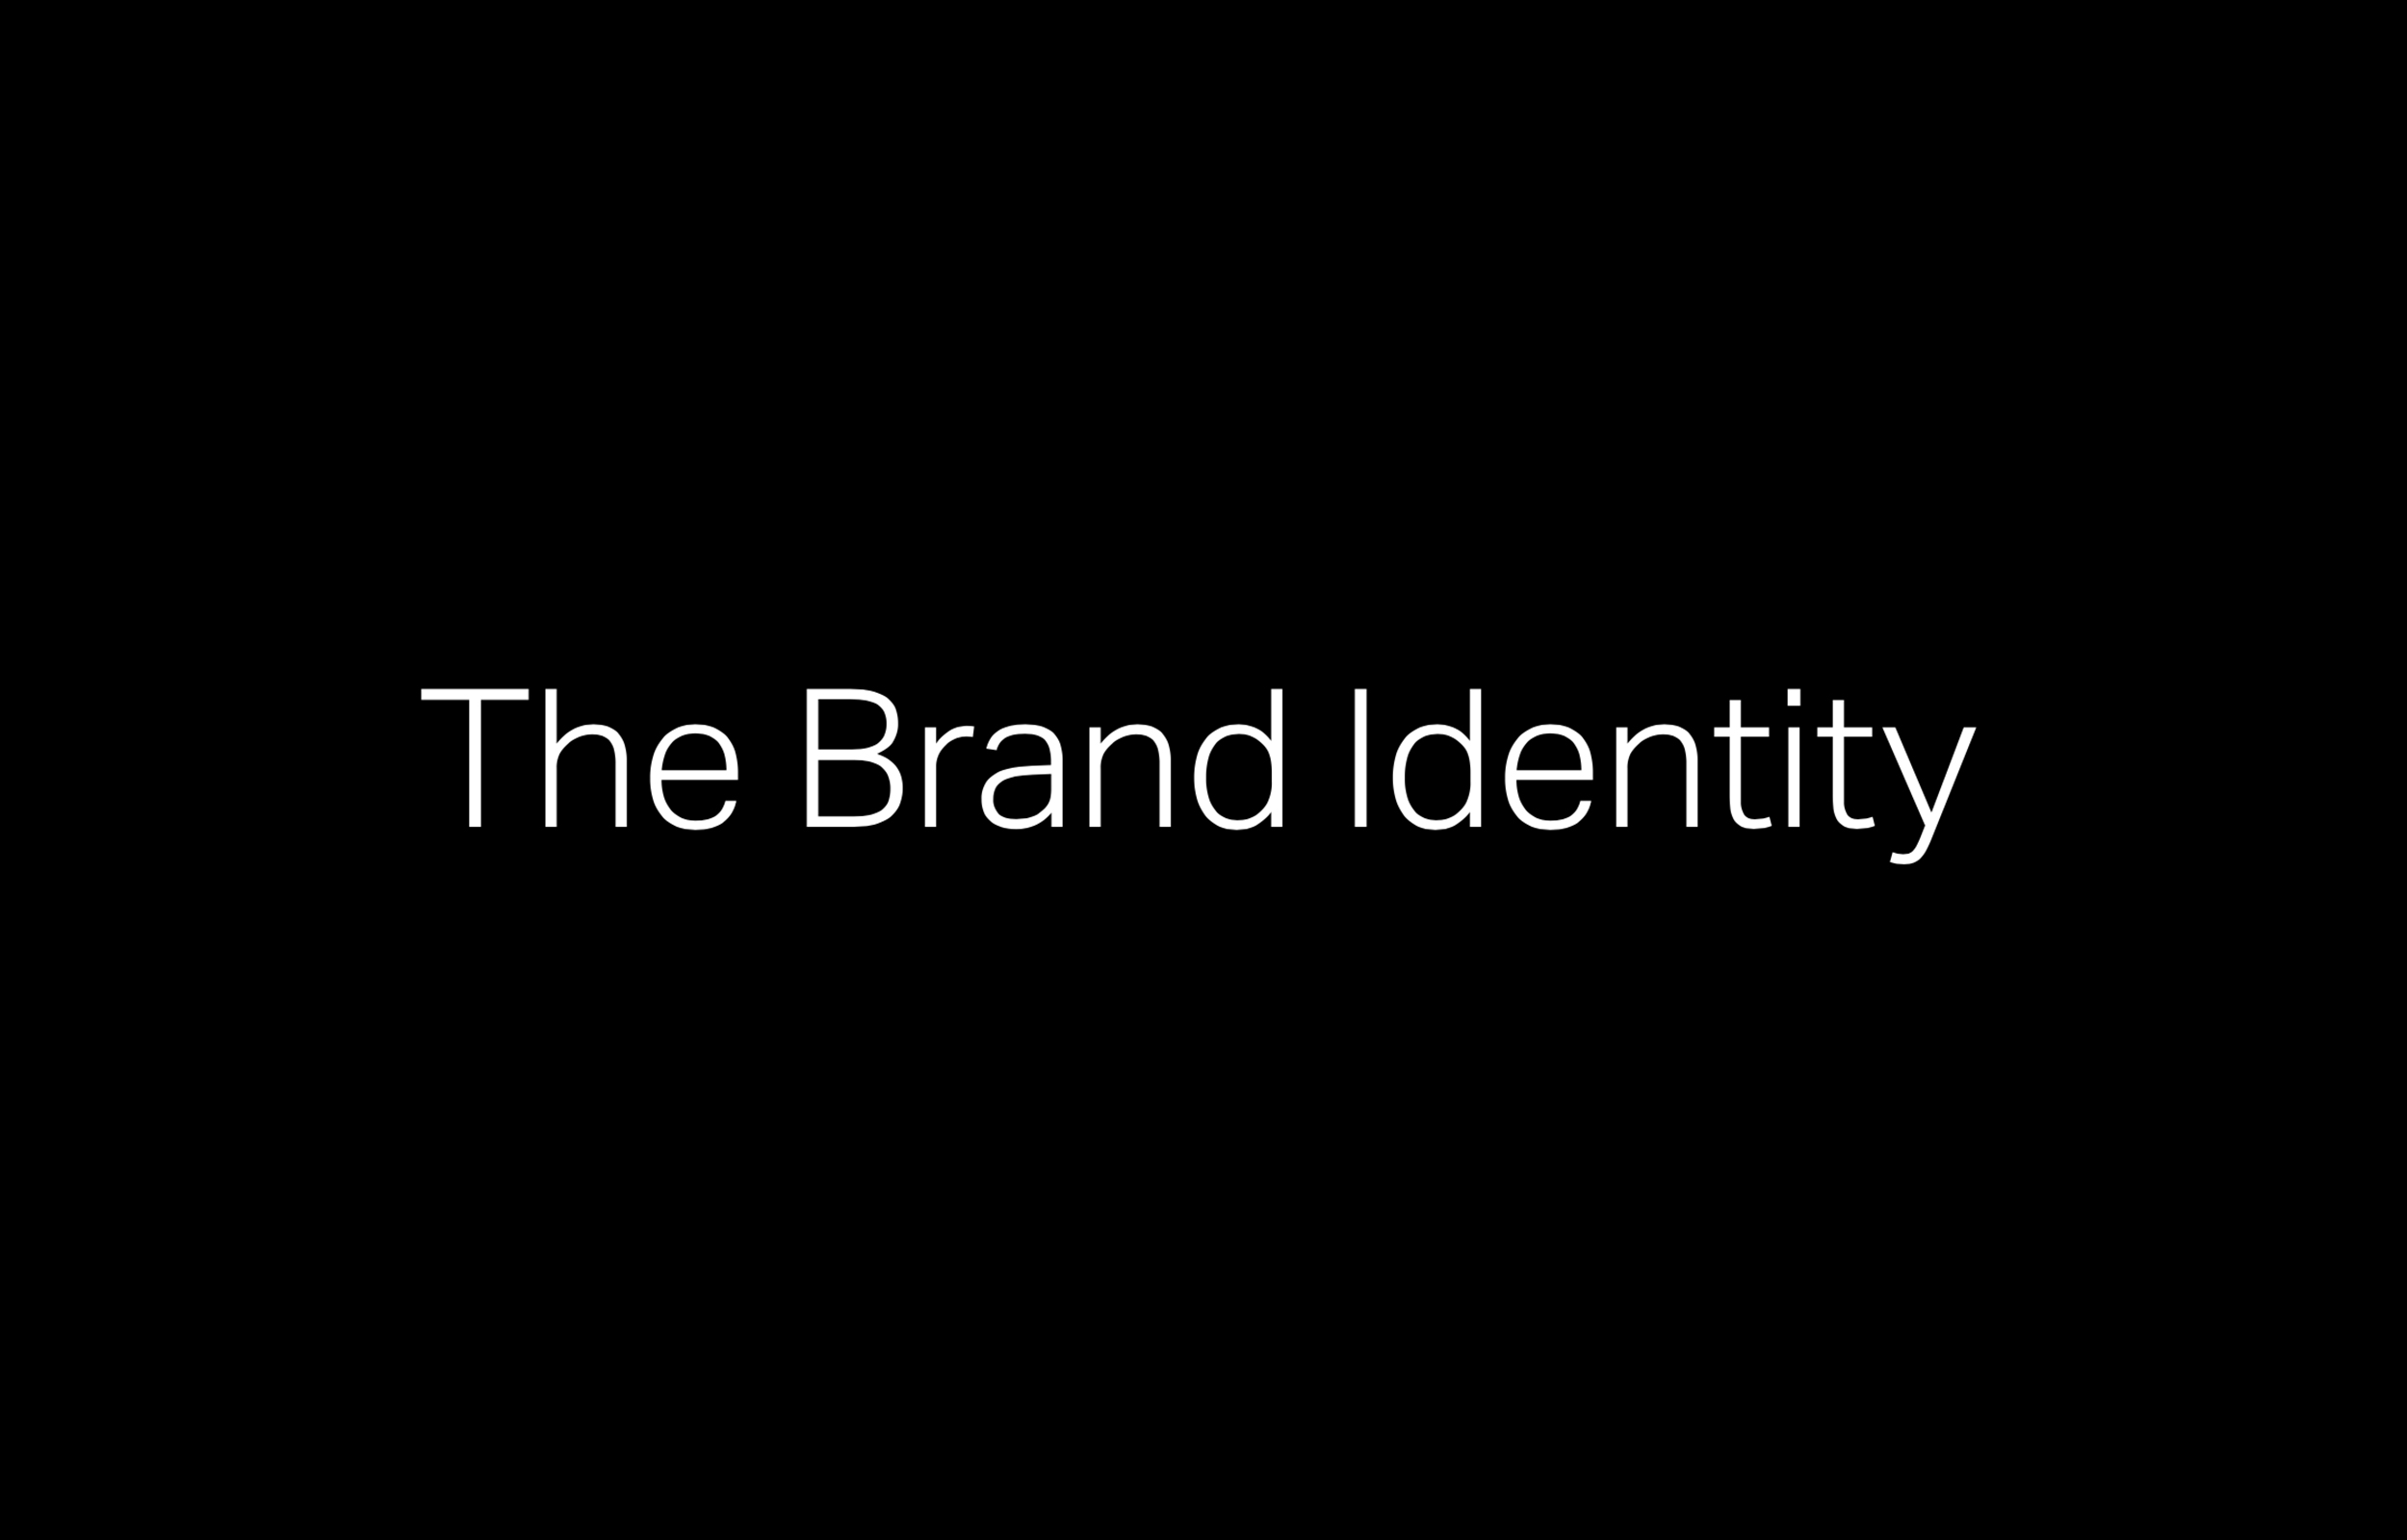 Omar Nieto on The Brand Identity